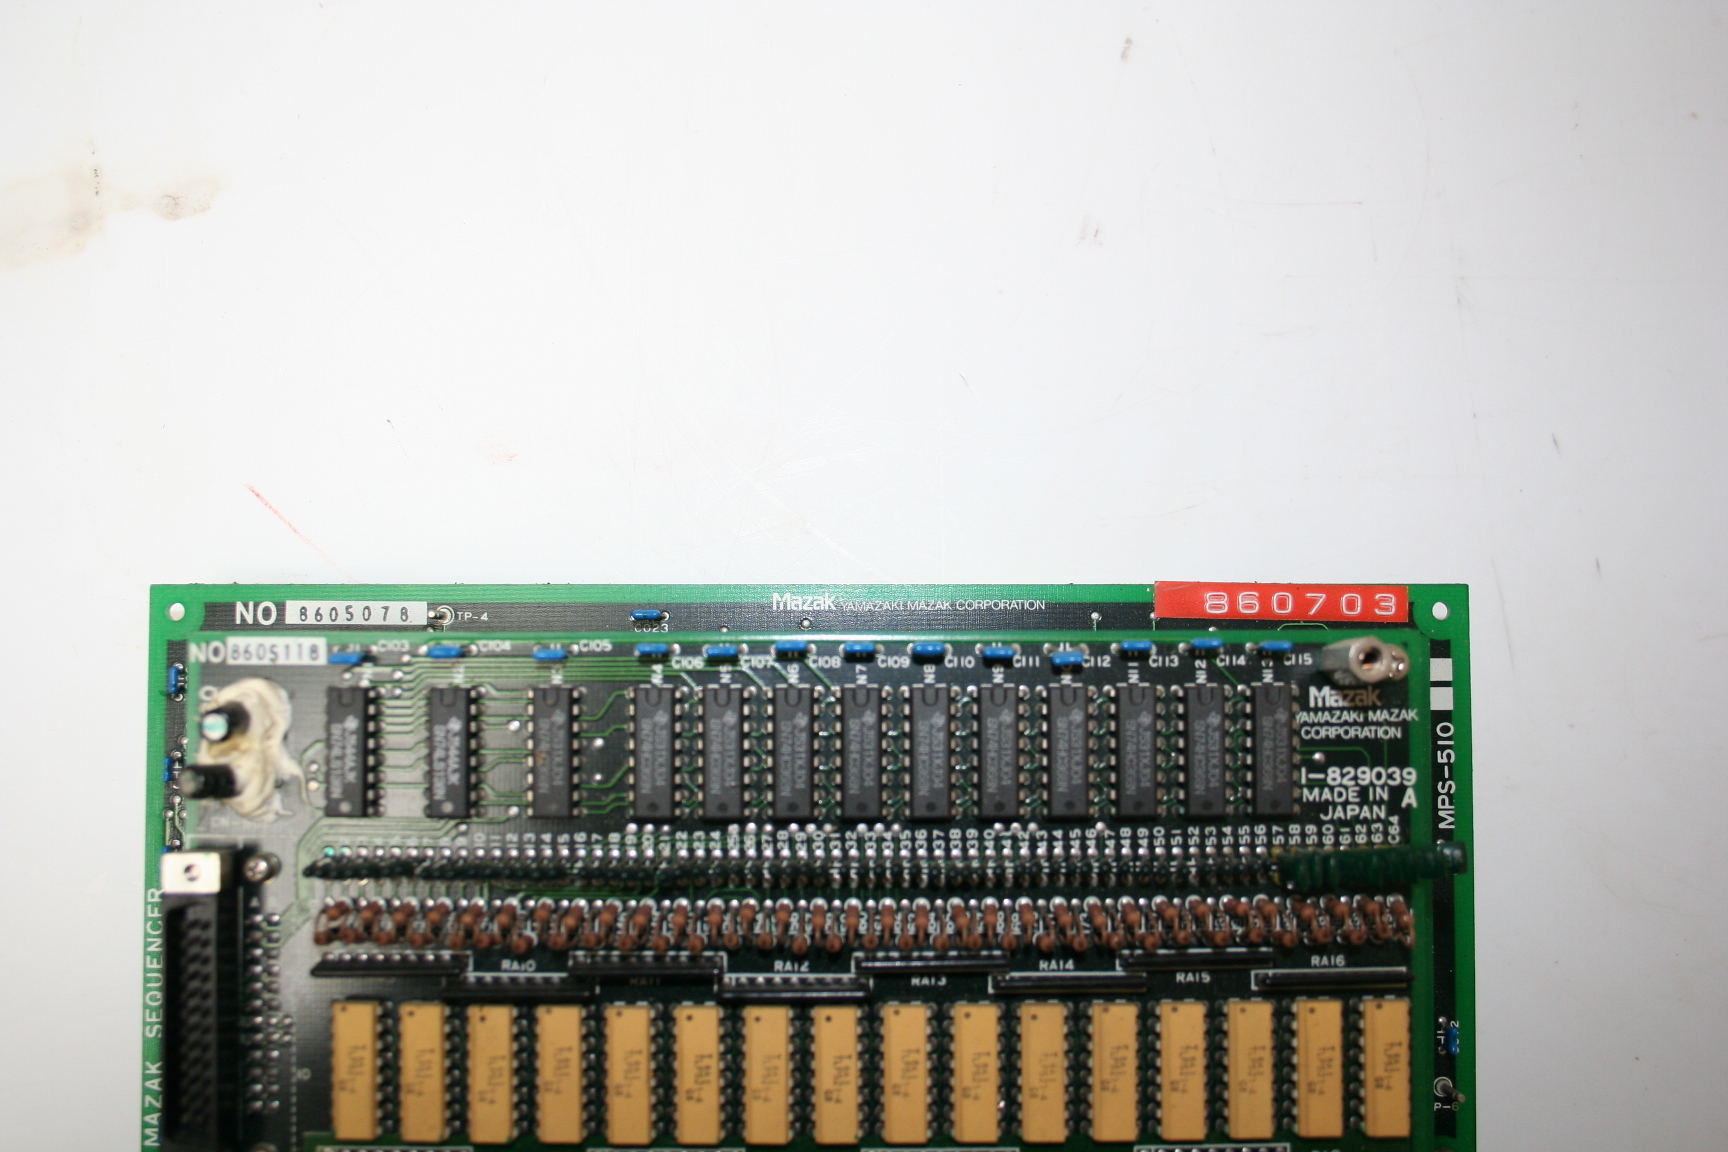 MPS-510 SEQUENCER b